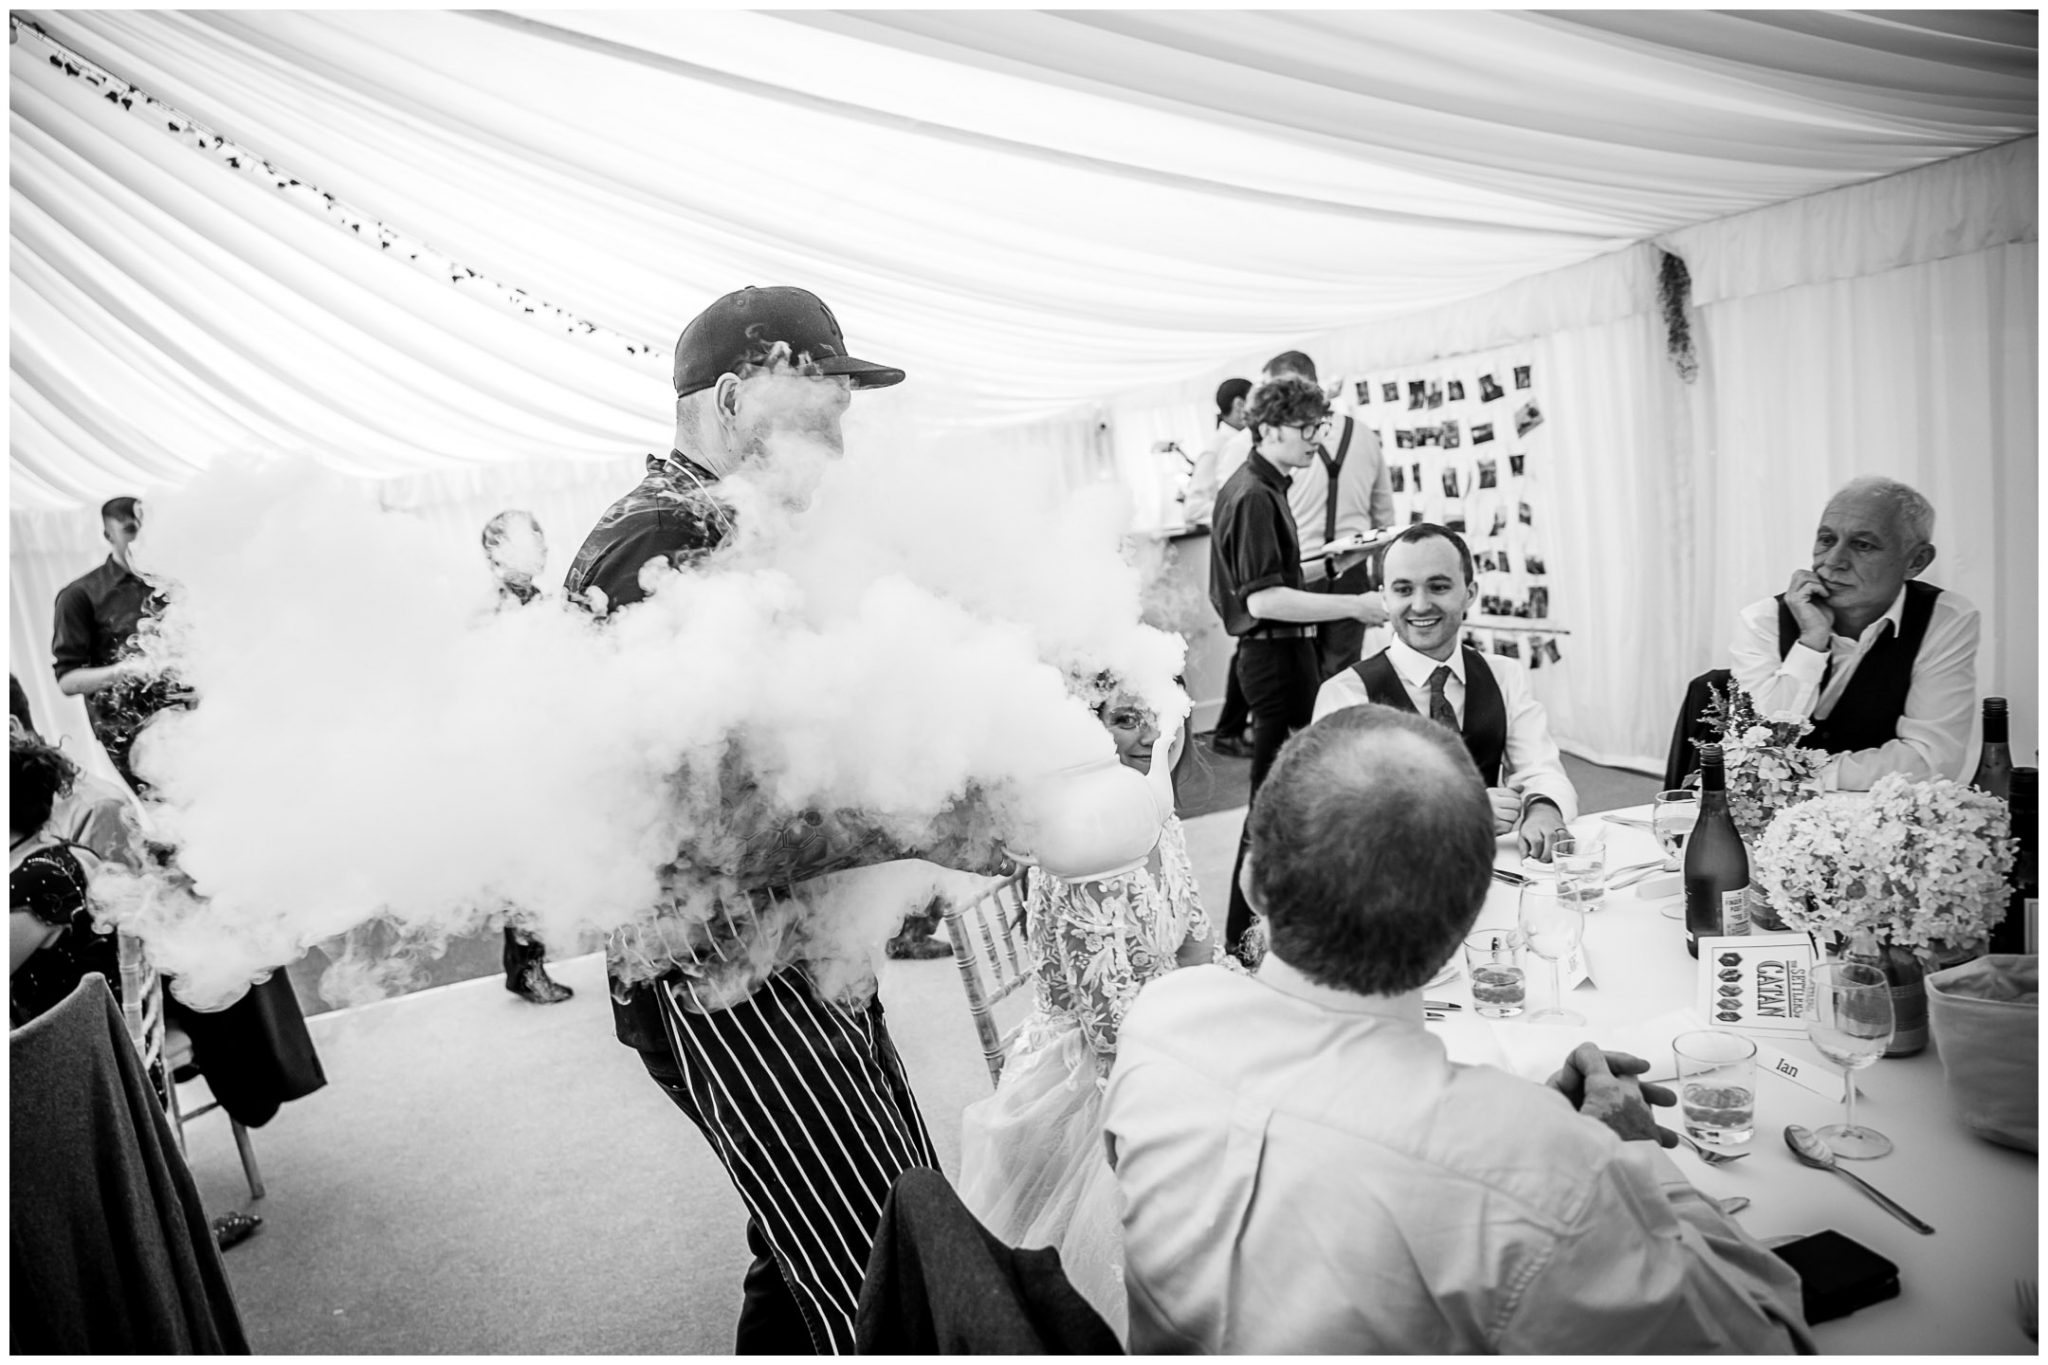 Dry ice billows out of a teapot as the dramatic first course is served to the top table